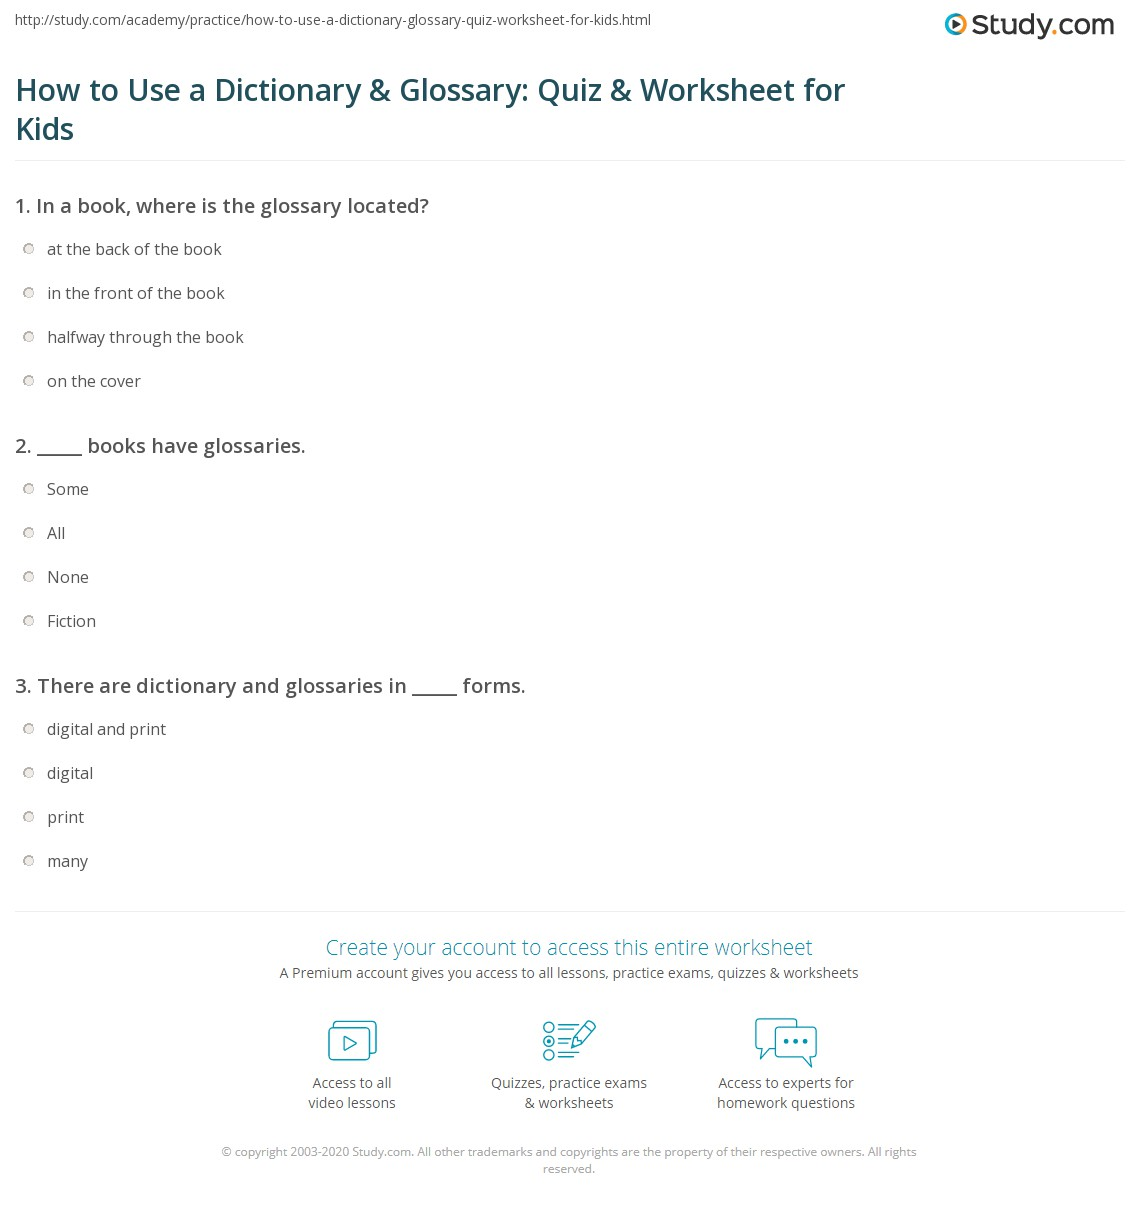 Worksheet Use Of This And That Worksheet For Kids use of a and an worksheet for kids scalien how to dictionary glossary quiz kids